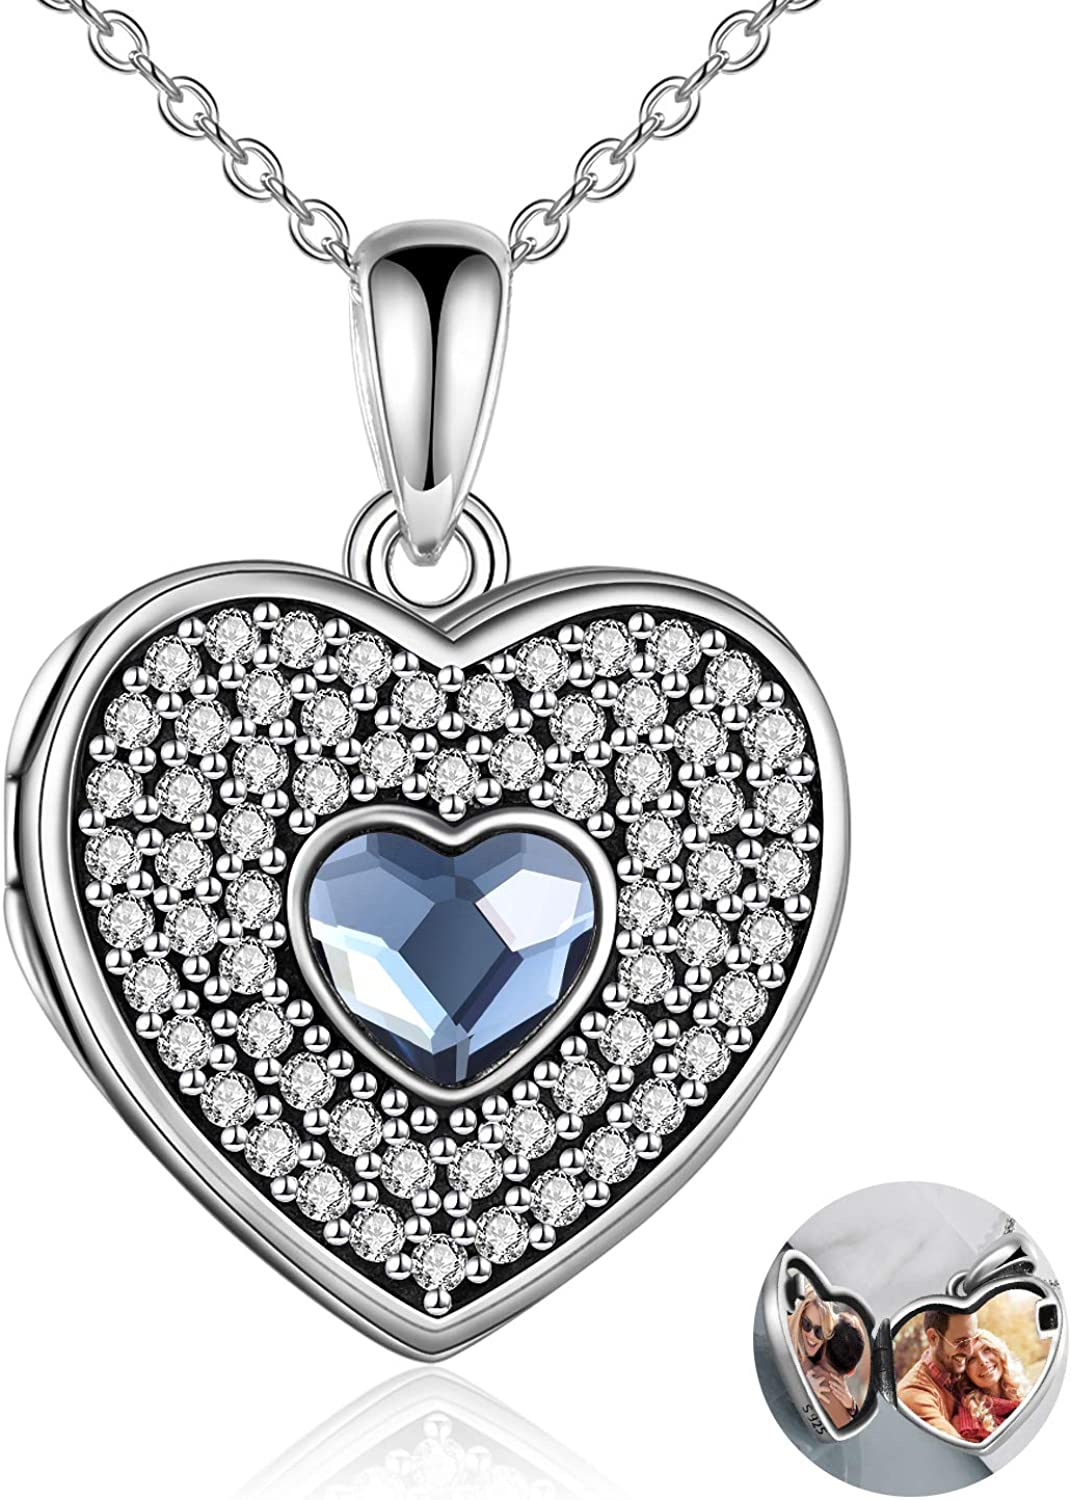 EXRANQO Personalized Heart Locket Necklace online shopping Max 40% OFF Sterling Silver Flowe